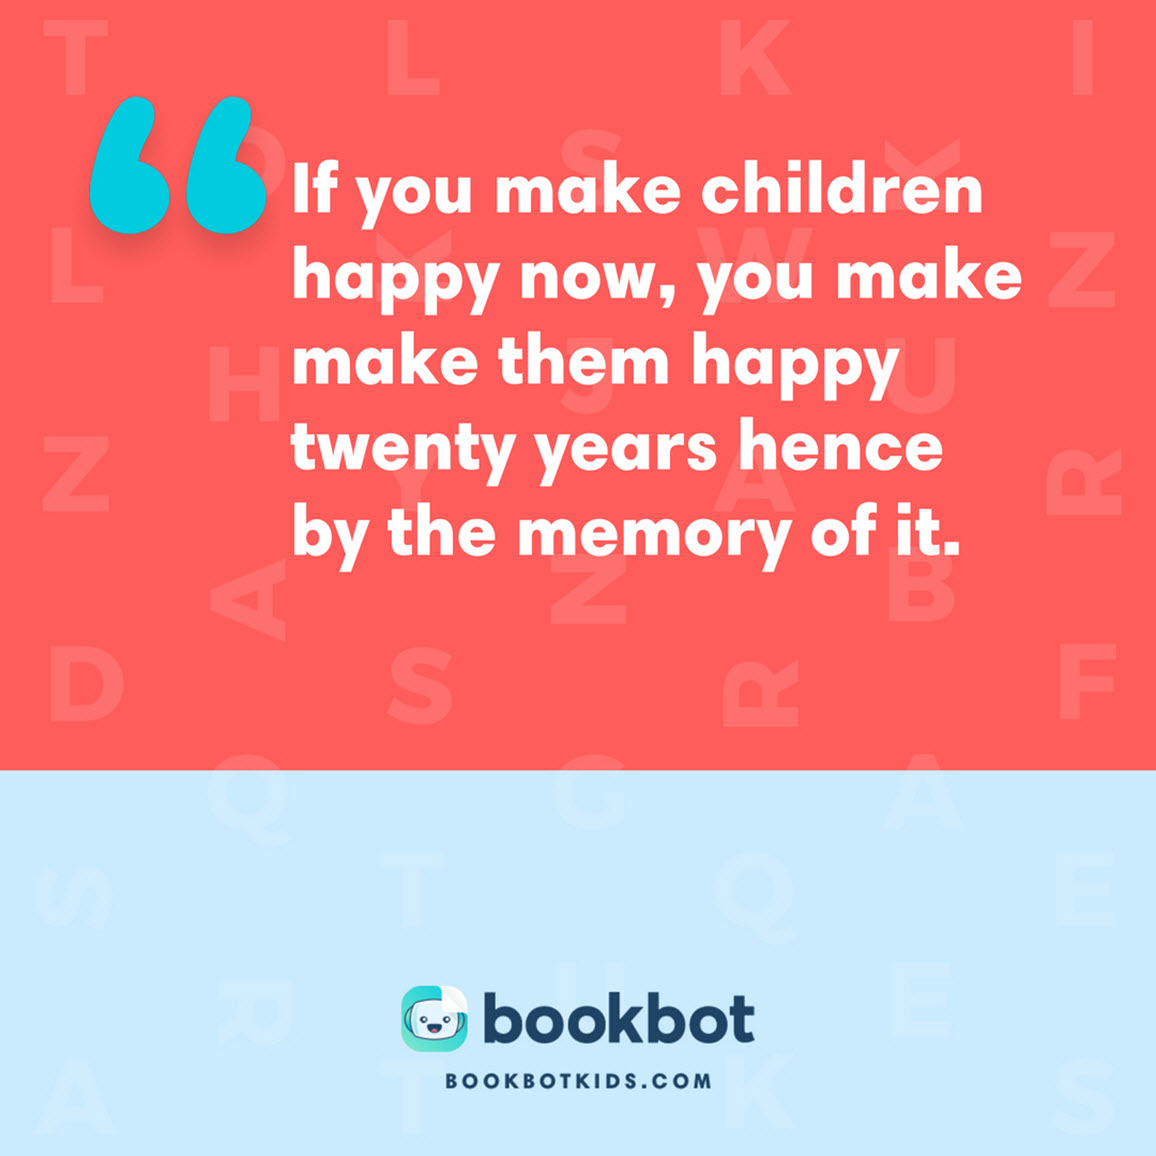 If you make children happy now, you make make them happy twenty years hence by the memory of it.